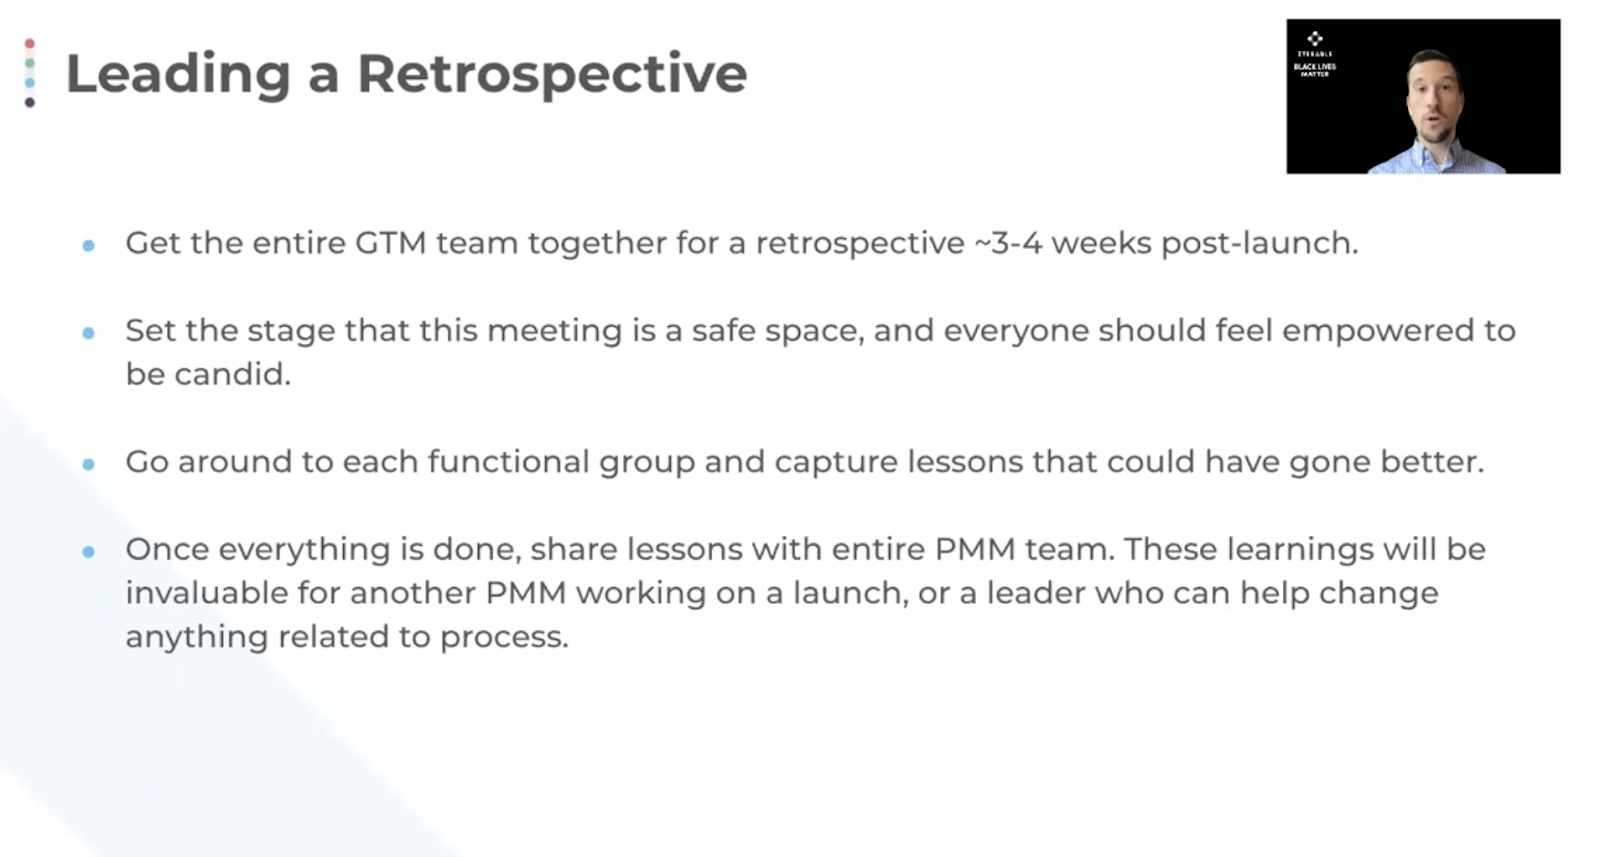 Lead a retrospective with your GTM team 3-4 weeks post-launch.